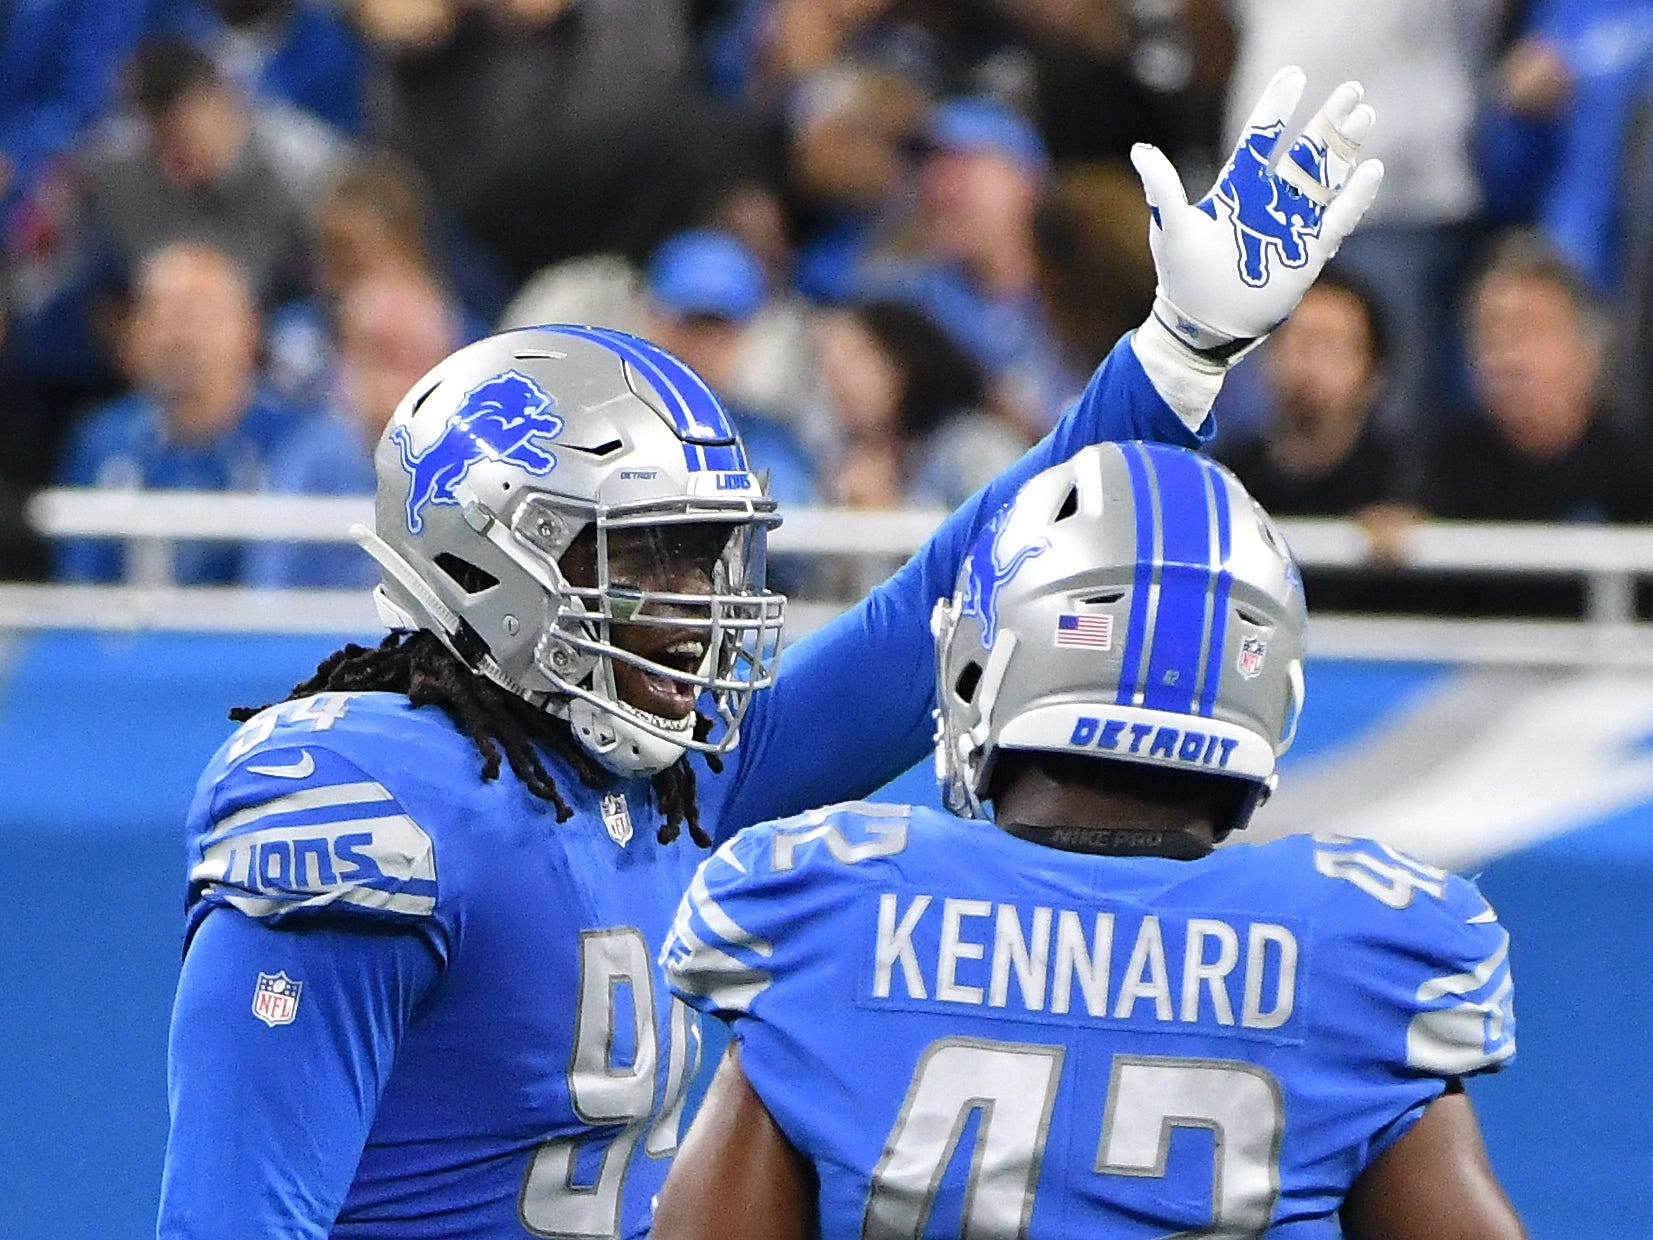 Lions Ezekiel Ansah celebrates his sack of Jets quarterback Sam Darnold in the first quarter.